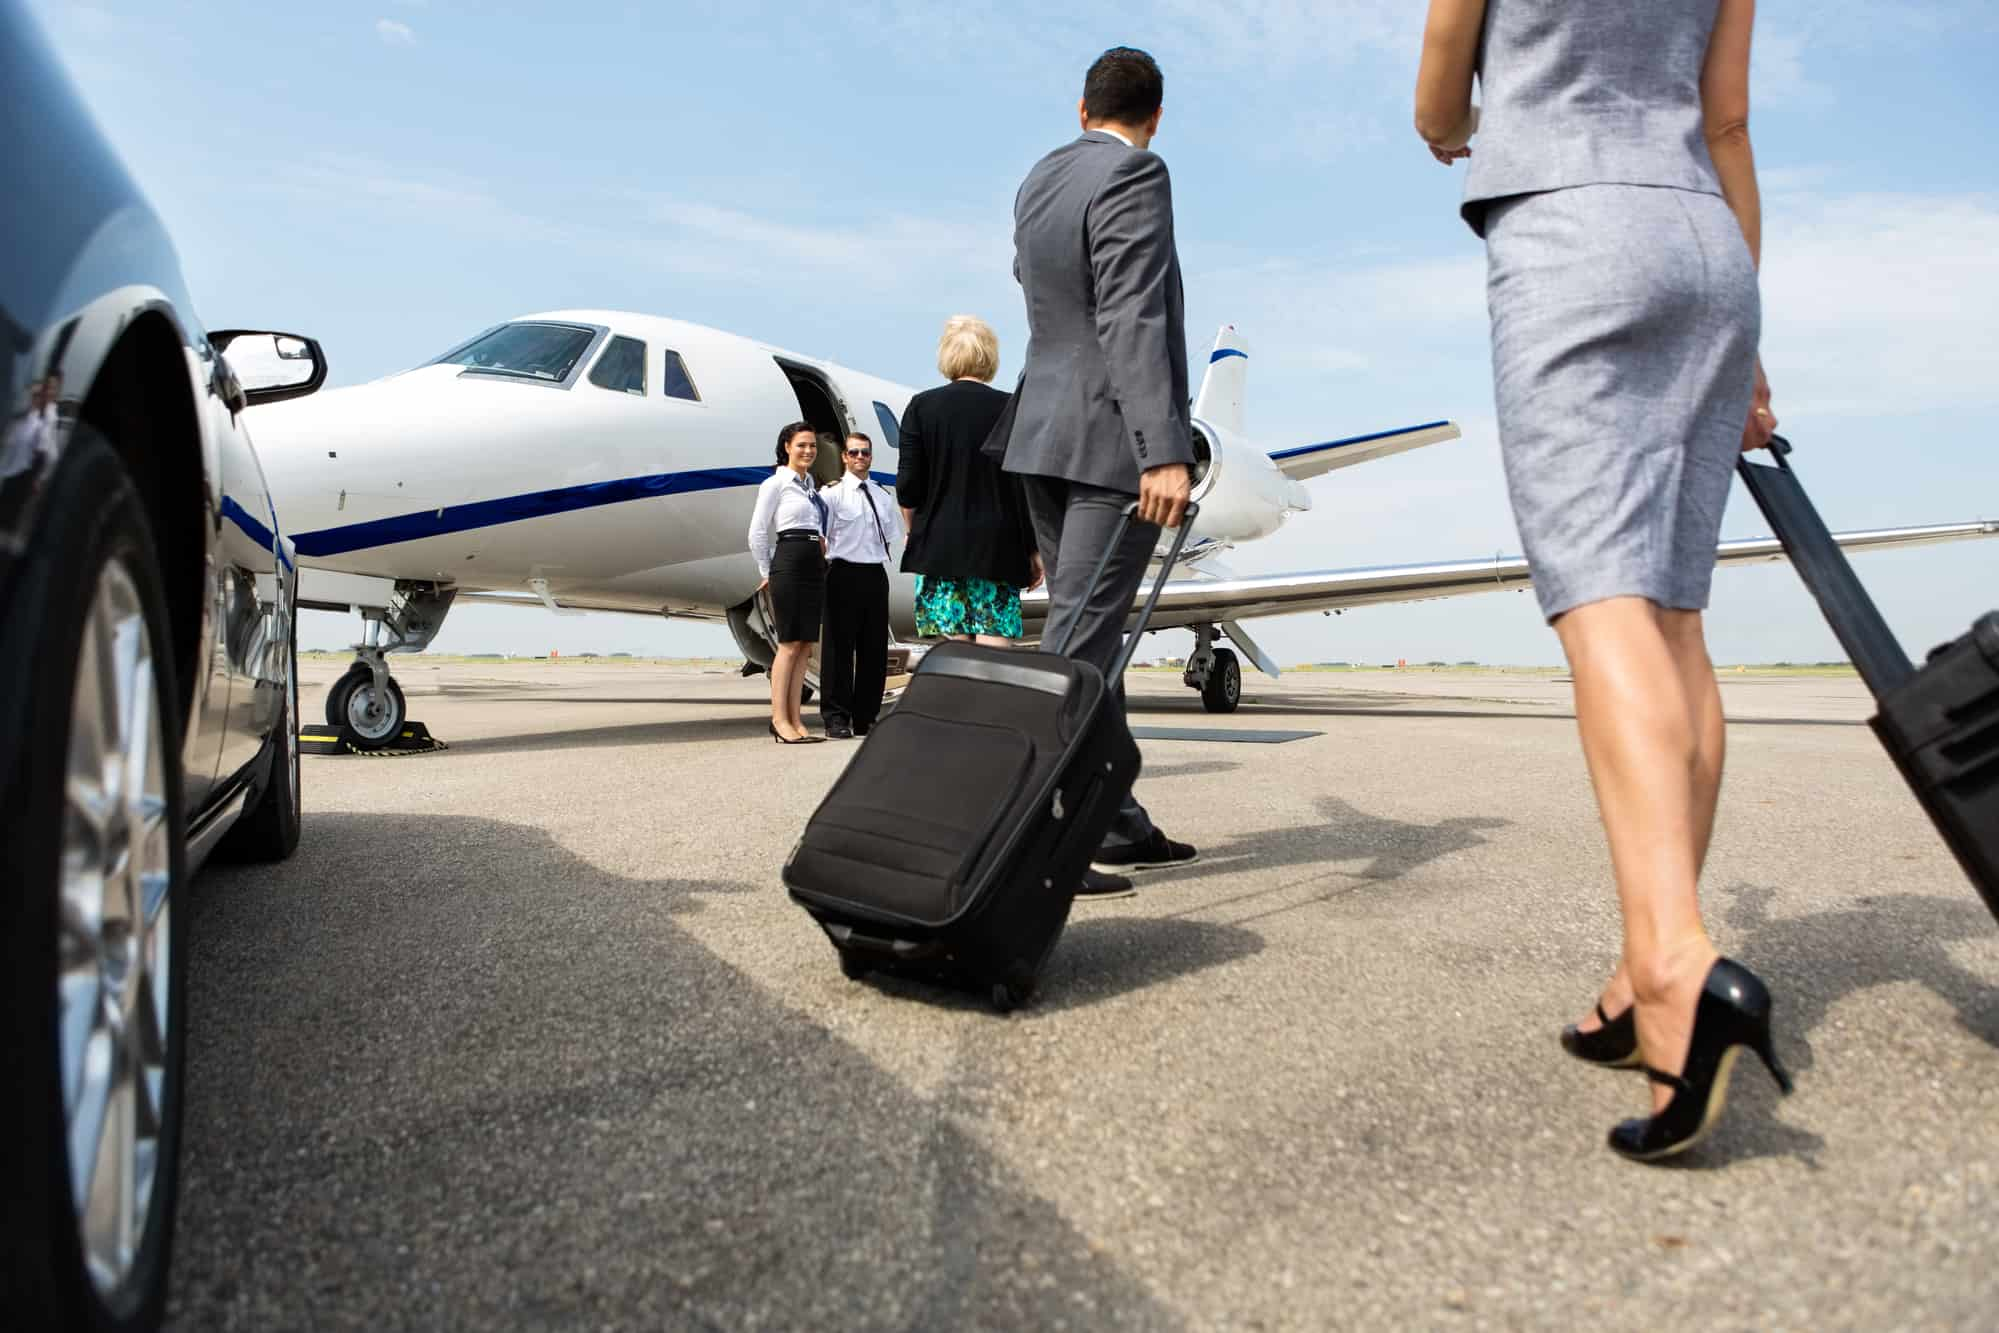 a couple being dropped off at their private jet without having to wait